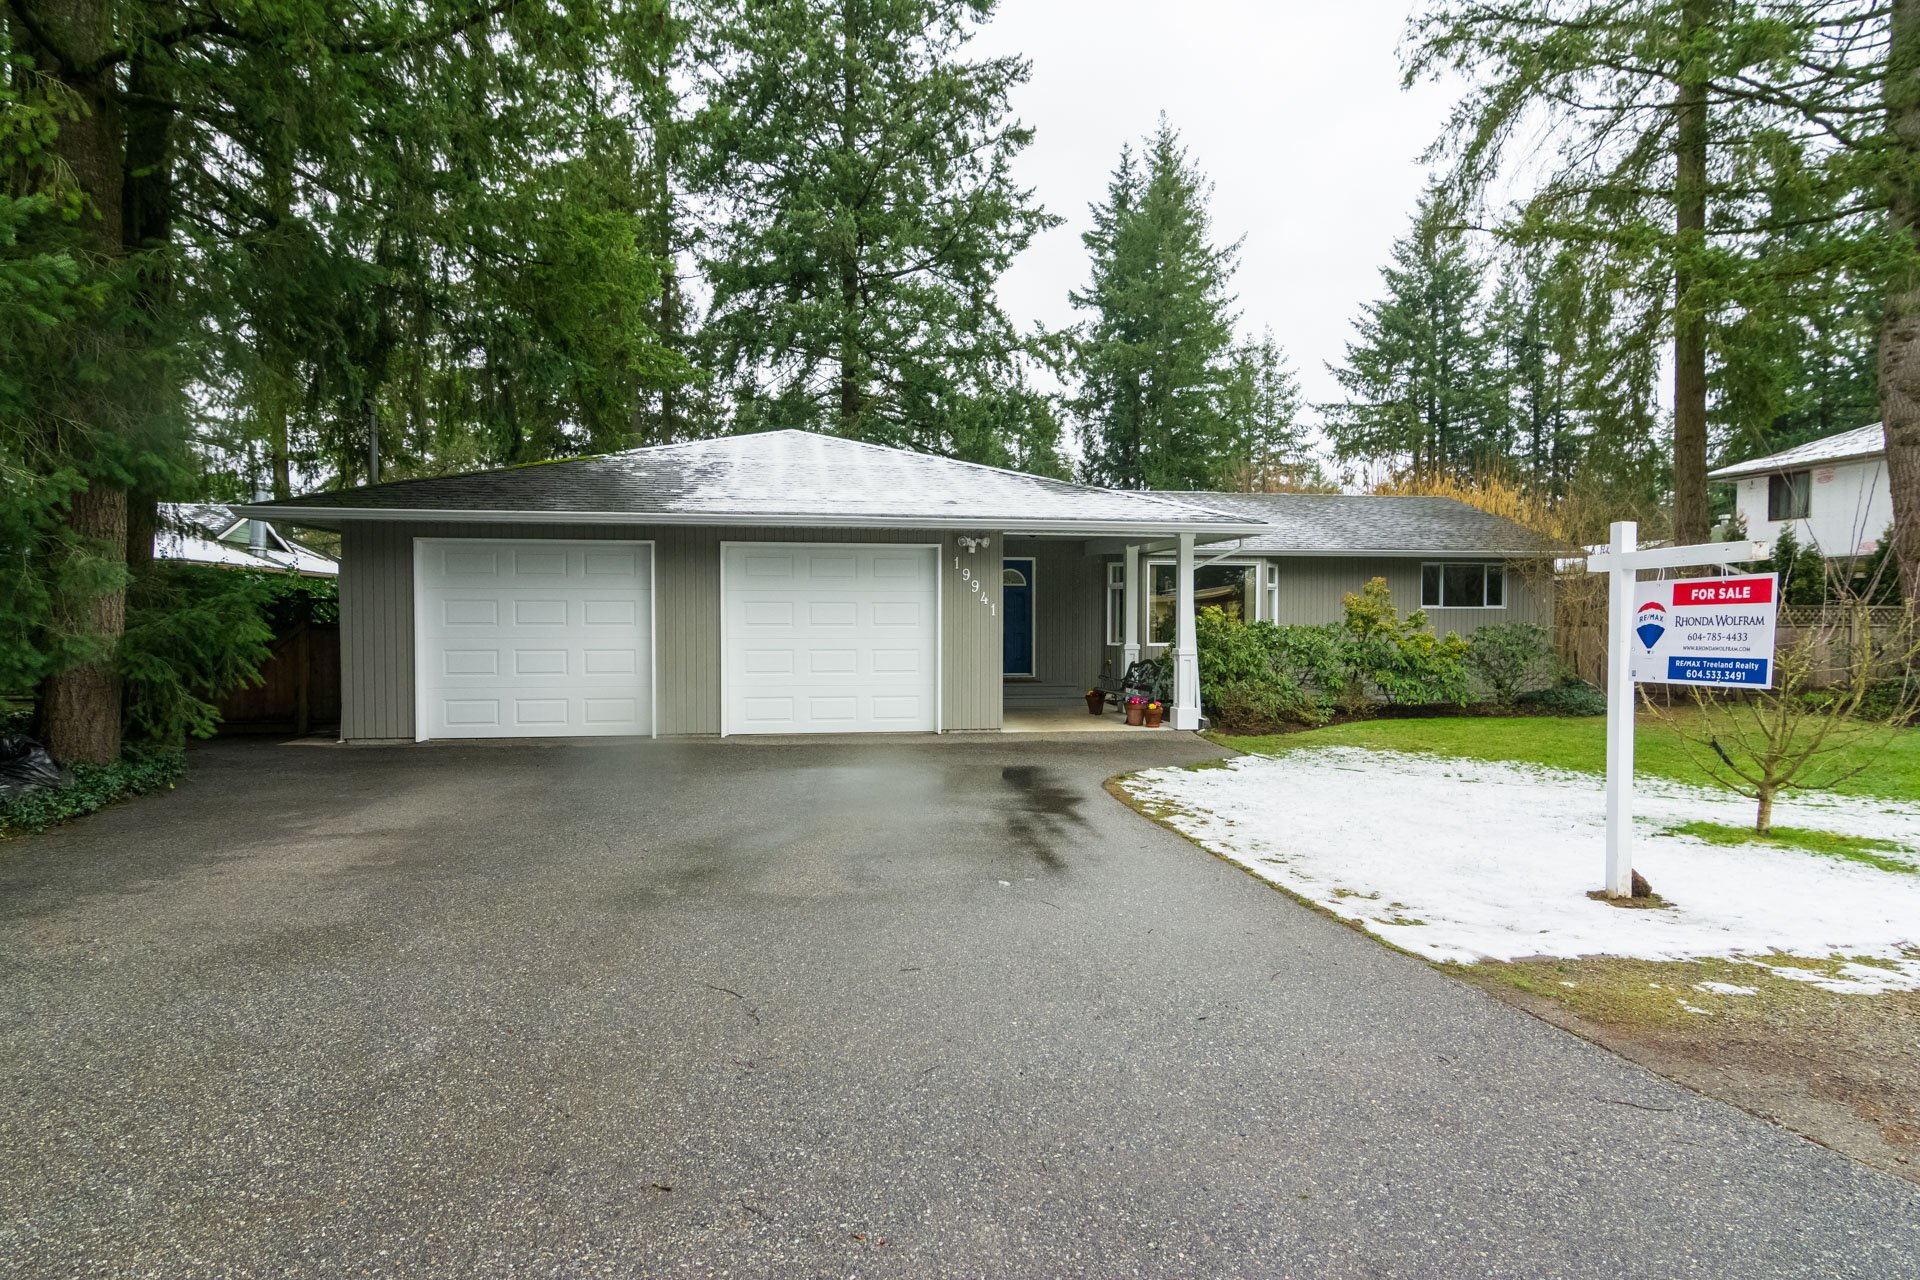 Welcome to 19941 - 37 Avenue in the sought-after Brookswood area of Langley, BC where you still can own a home on a large lot!